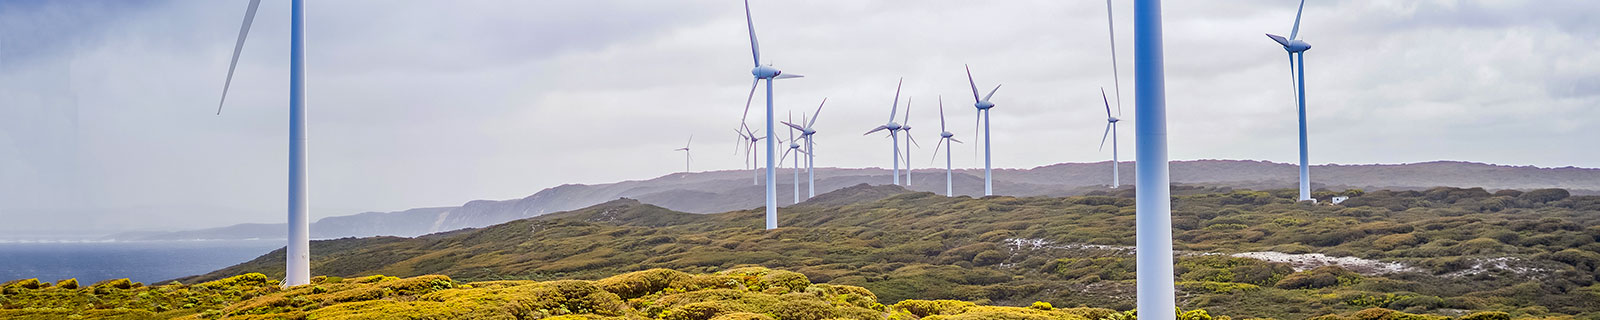 Albany wind farm, Harry Cunningham